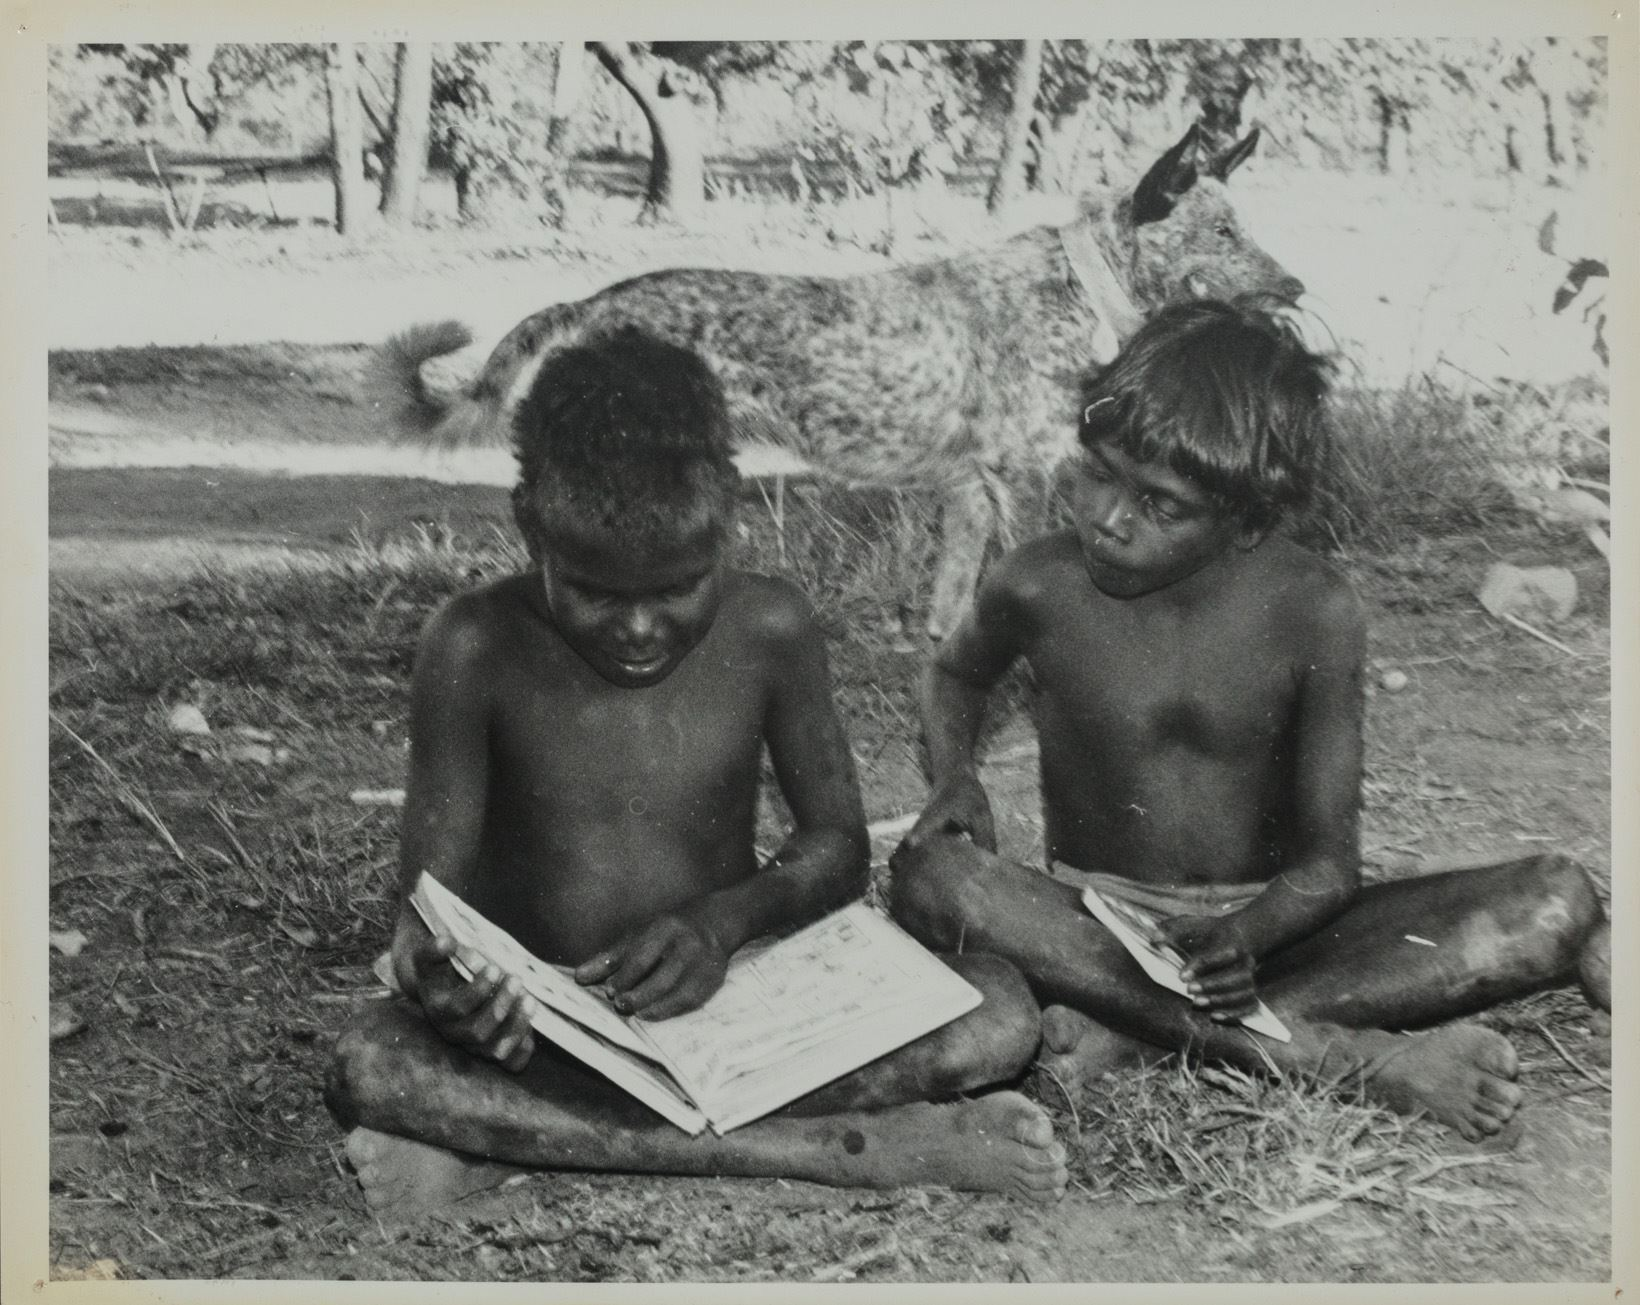 Two young boys with no shirts on sitting crossed legged on the ground reading books